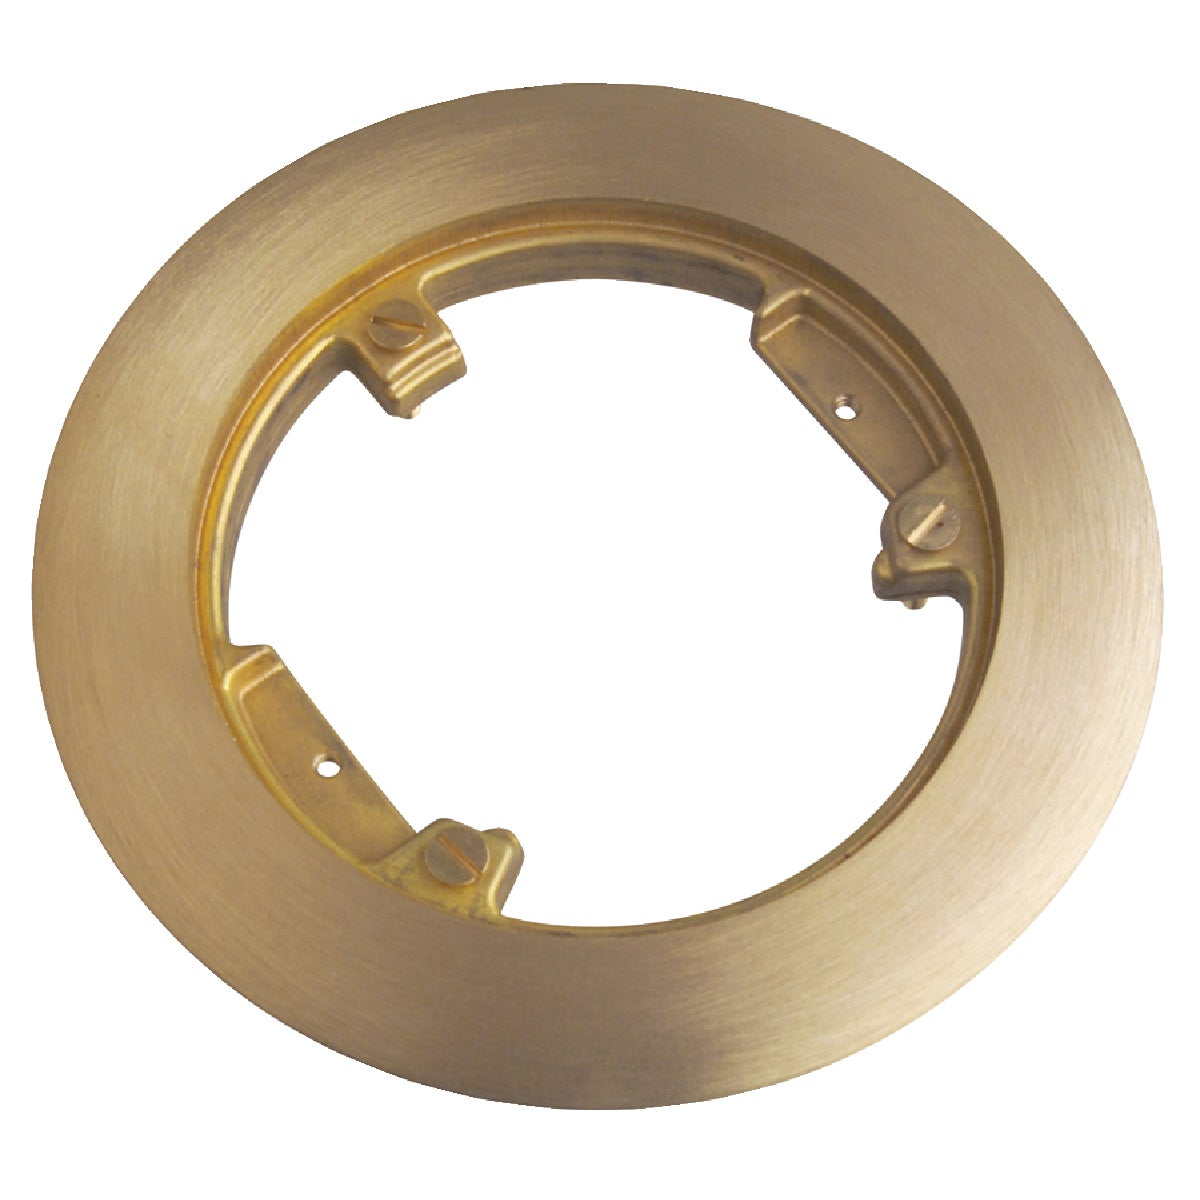 BRASS CARPET FLANGE - P60CP by Thomas & Betts